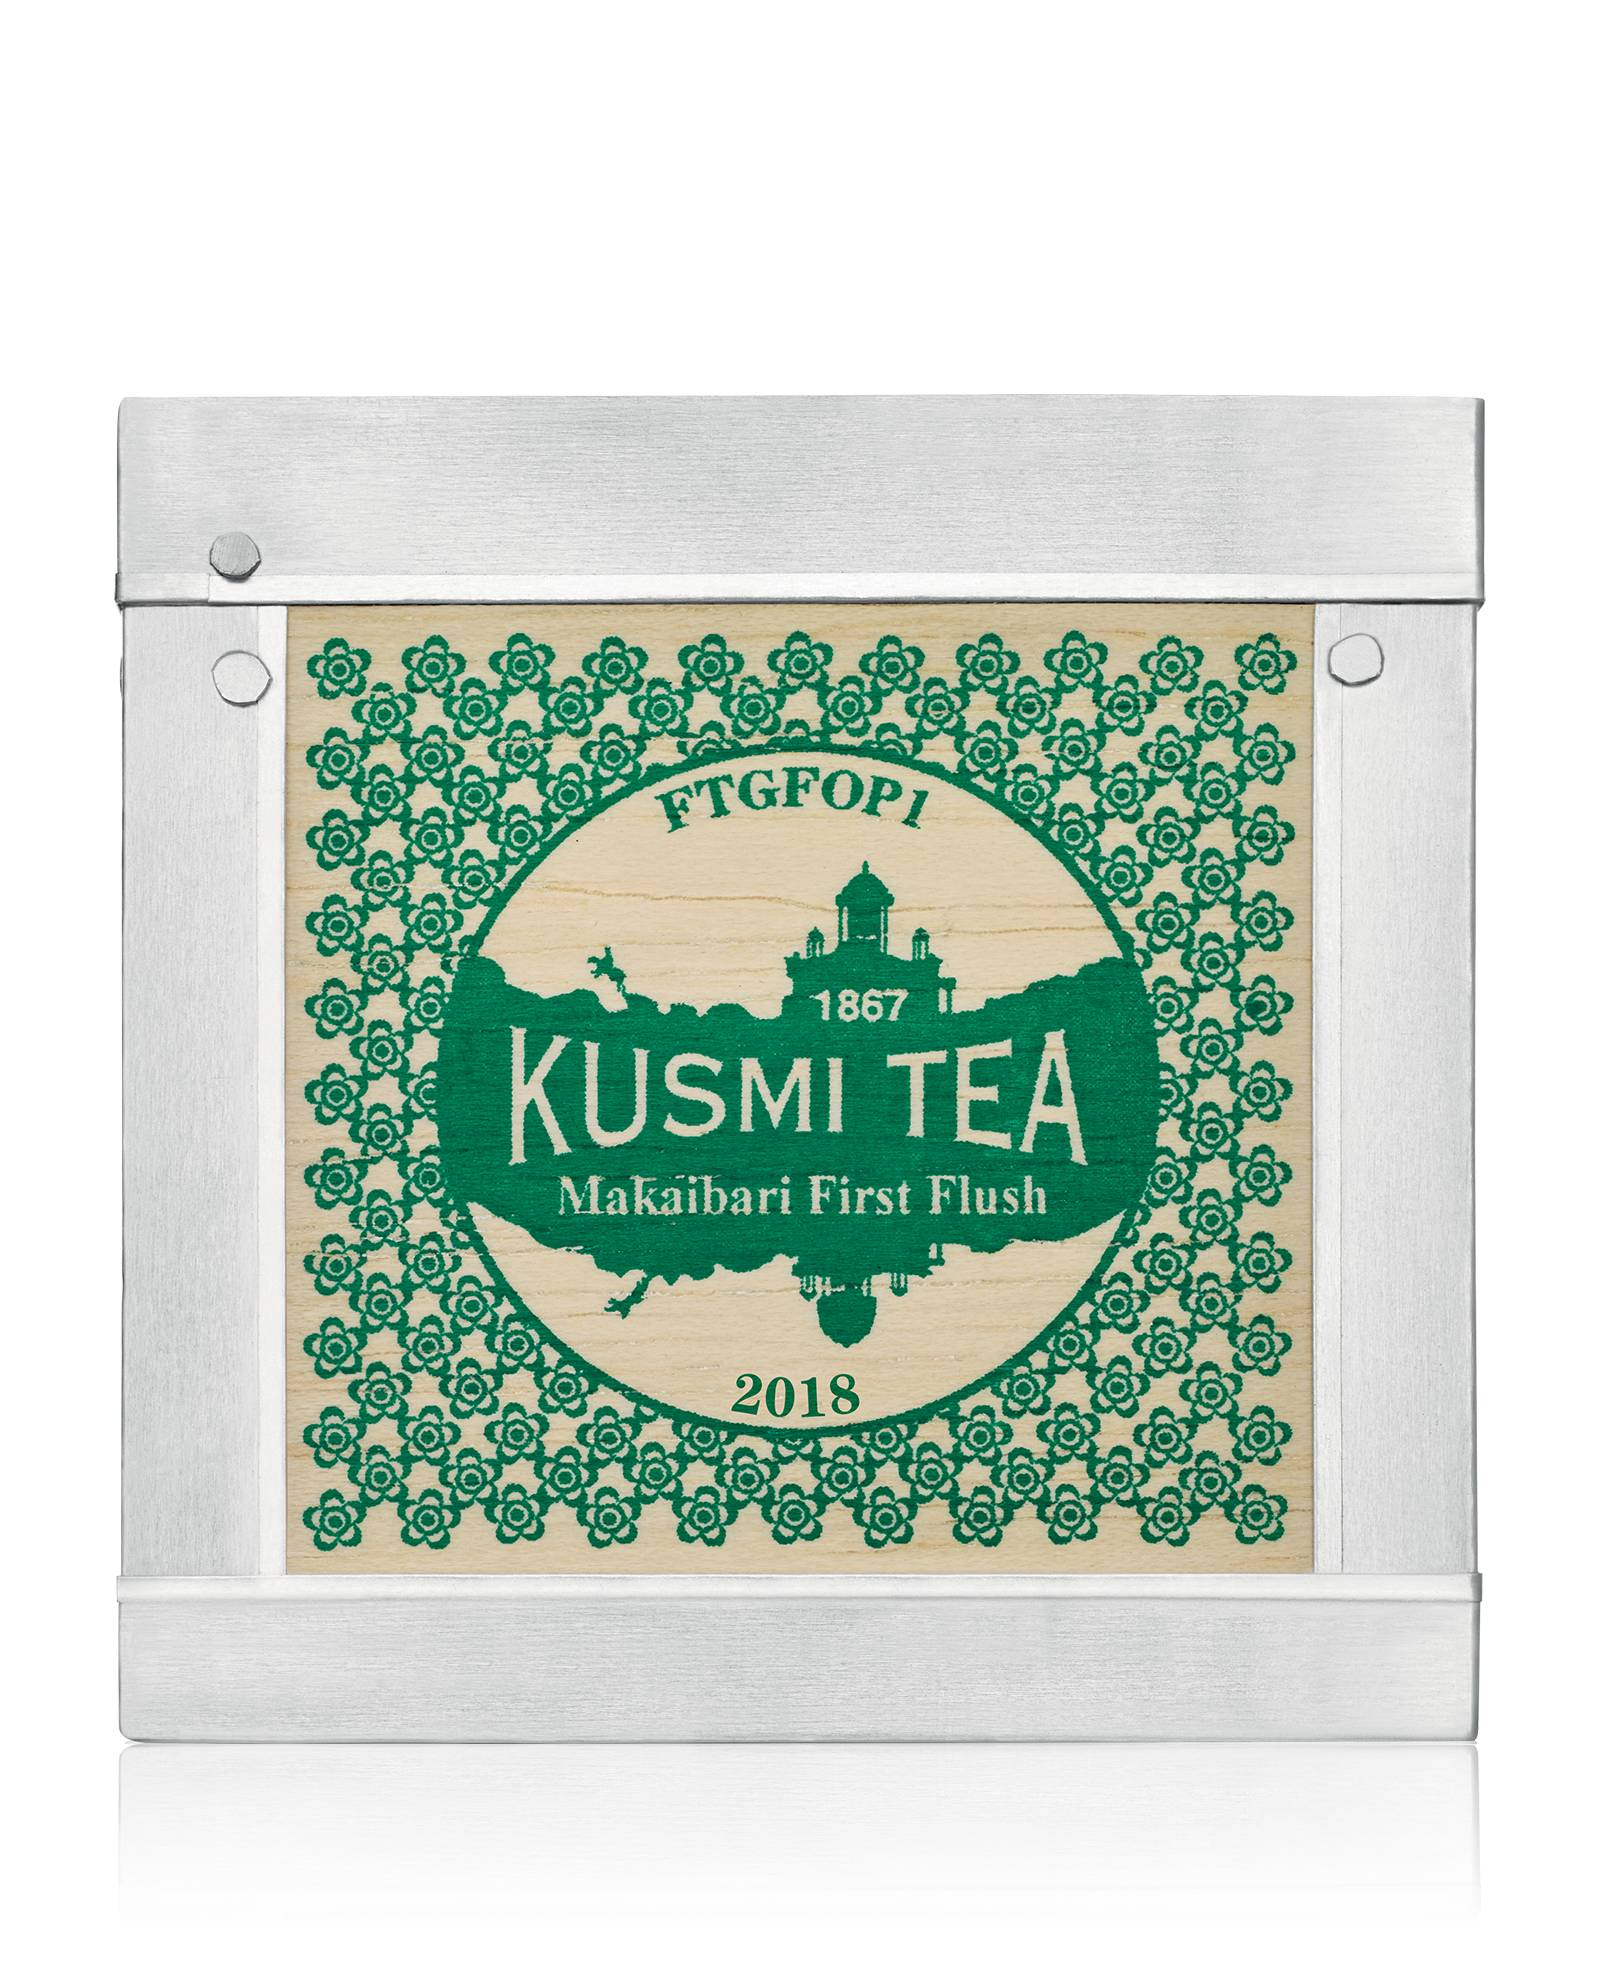 KUSMI TEA Makaibari Darjeeling First Flush 2018 Kusmi Tea